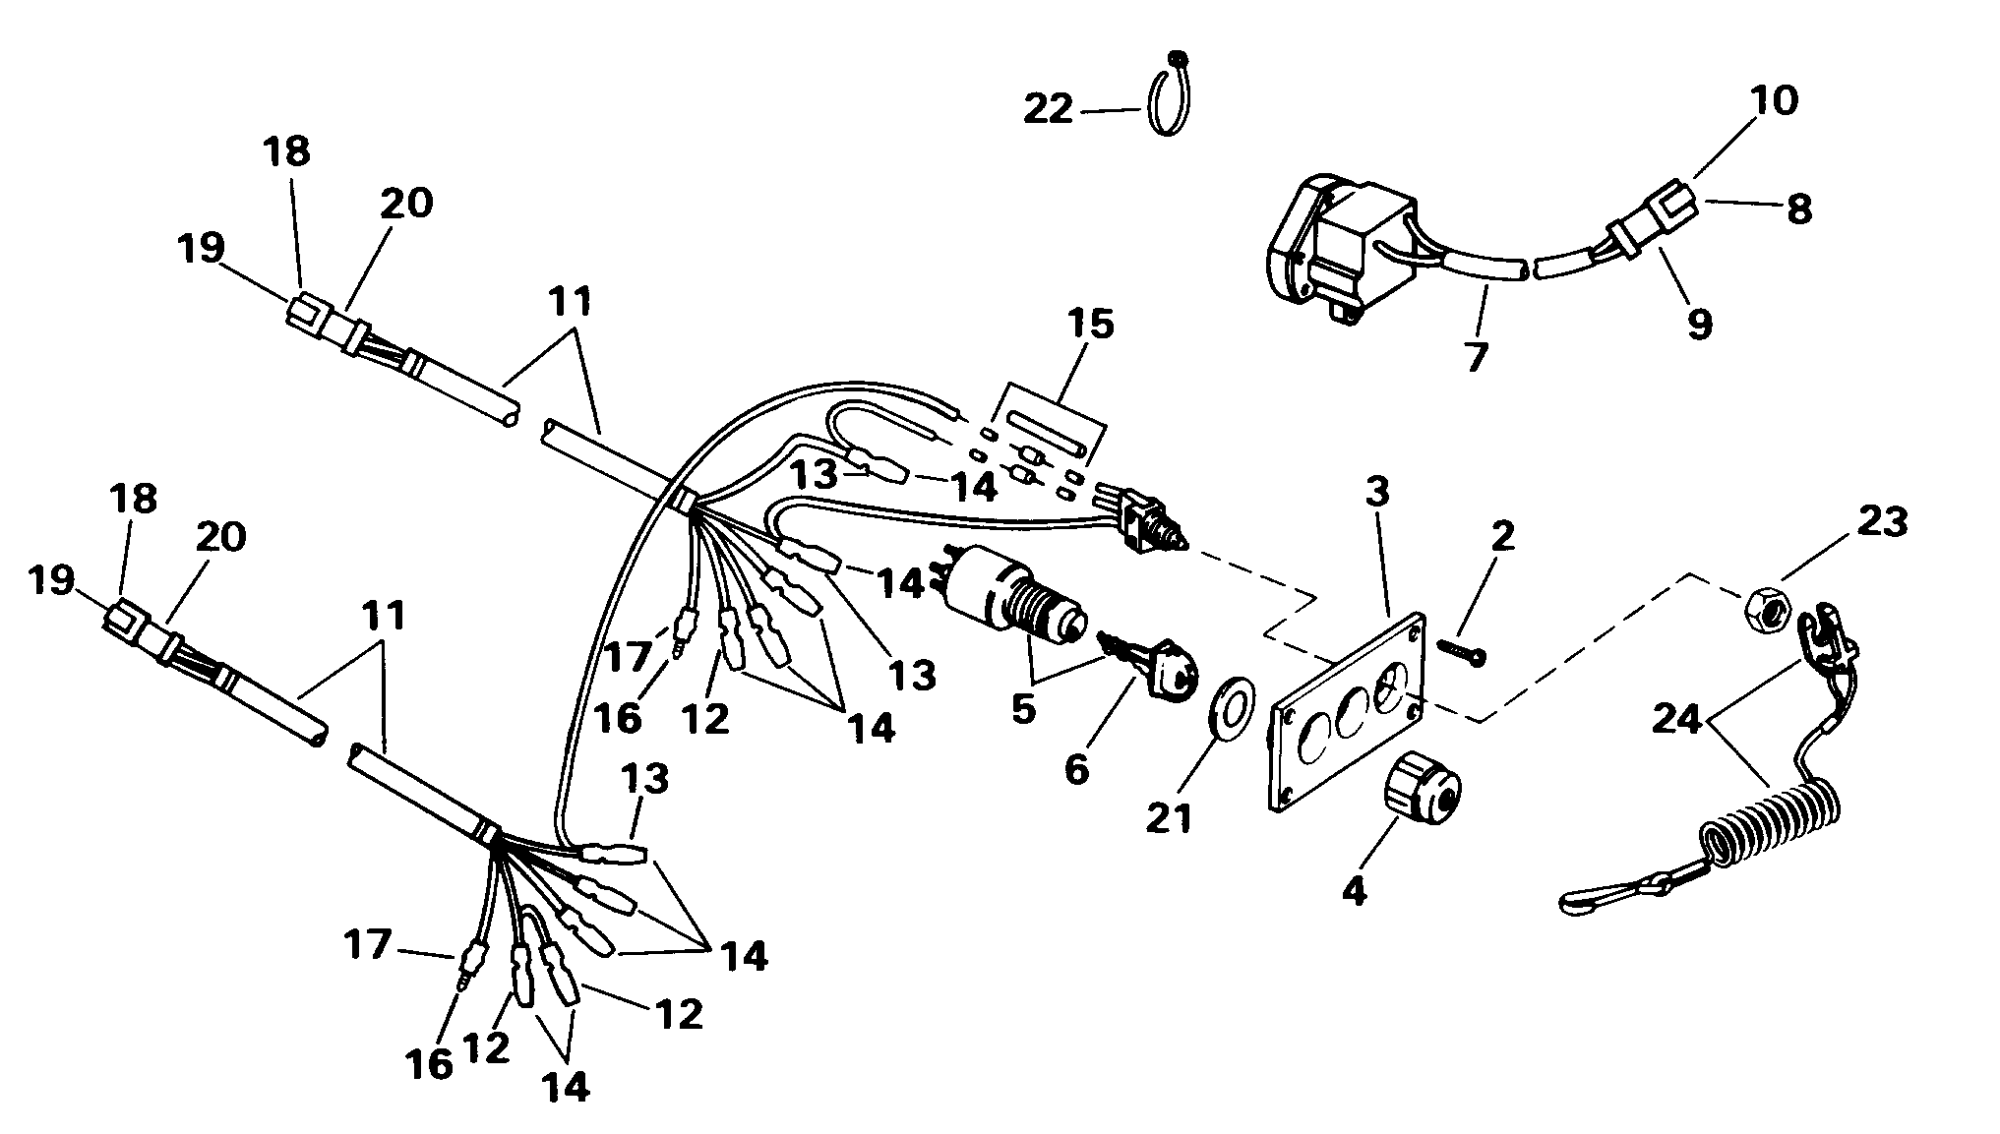 hight resolution of 5005800 brp evinrude ignition switch wiring diagram wiring diagram omc ignition wiring diagram 19880evinrude ignition switch